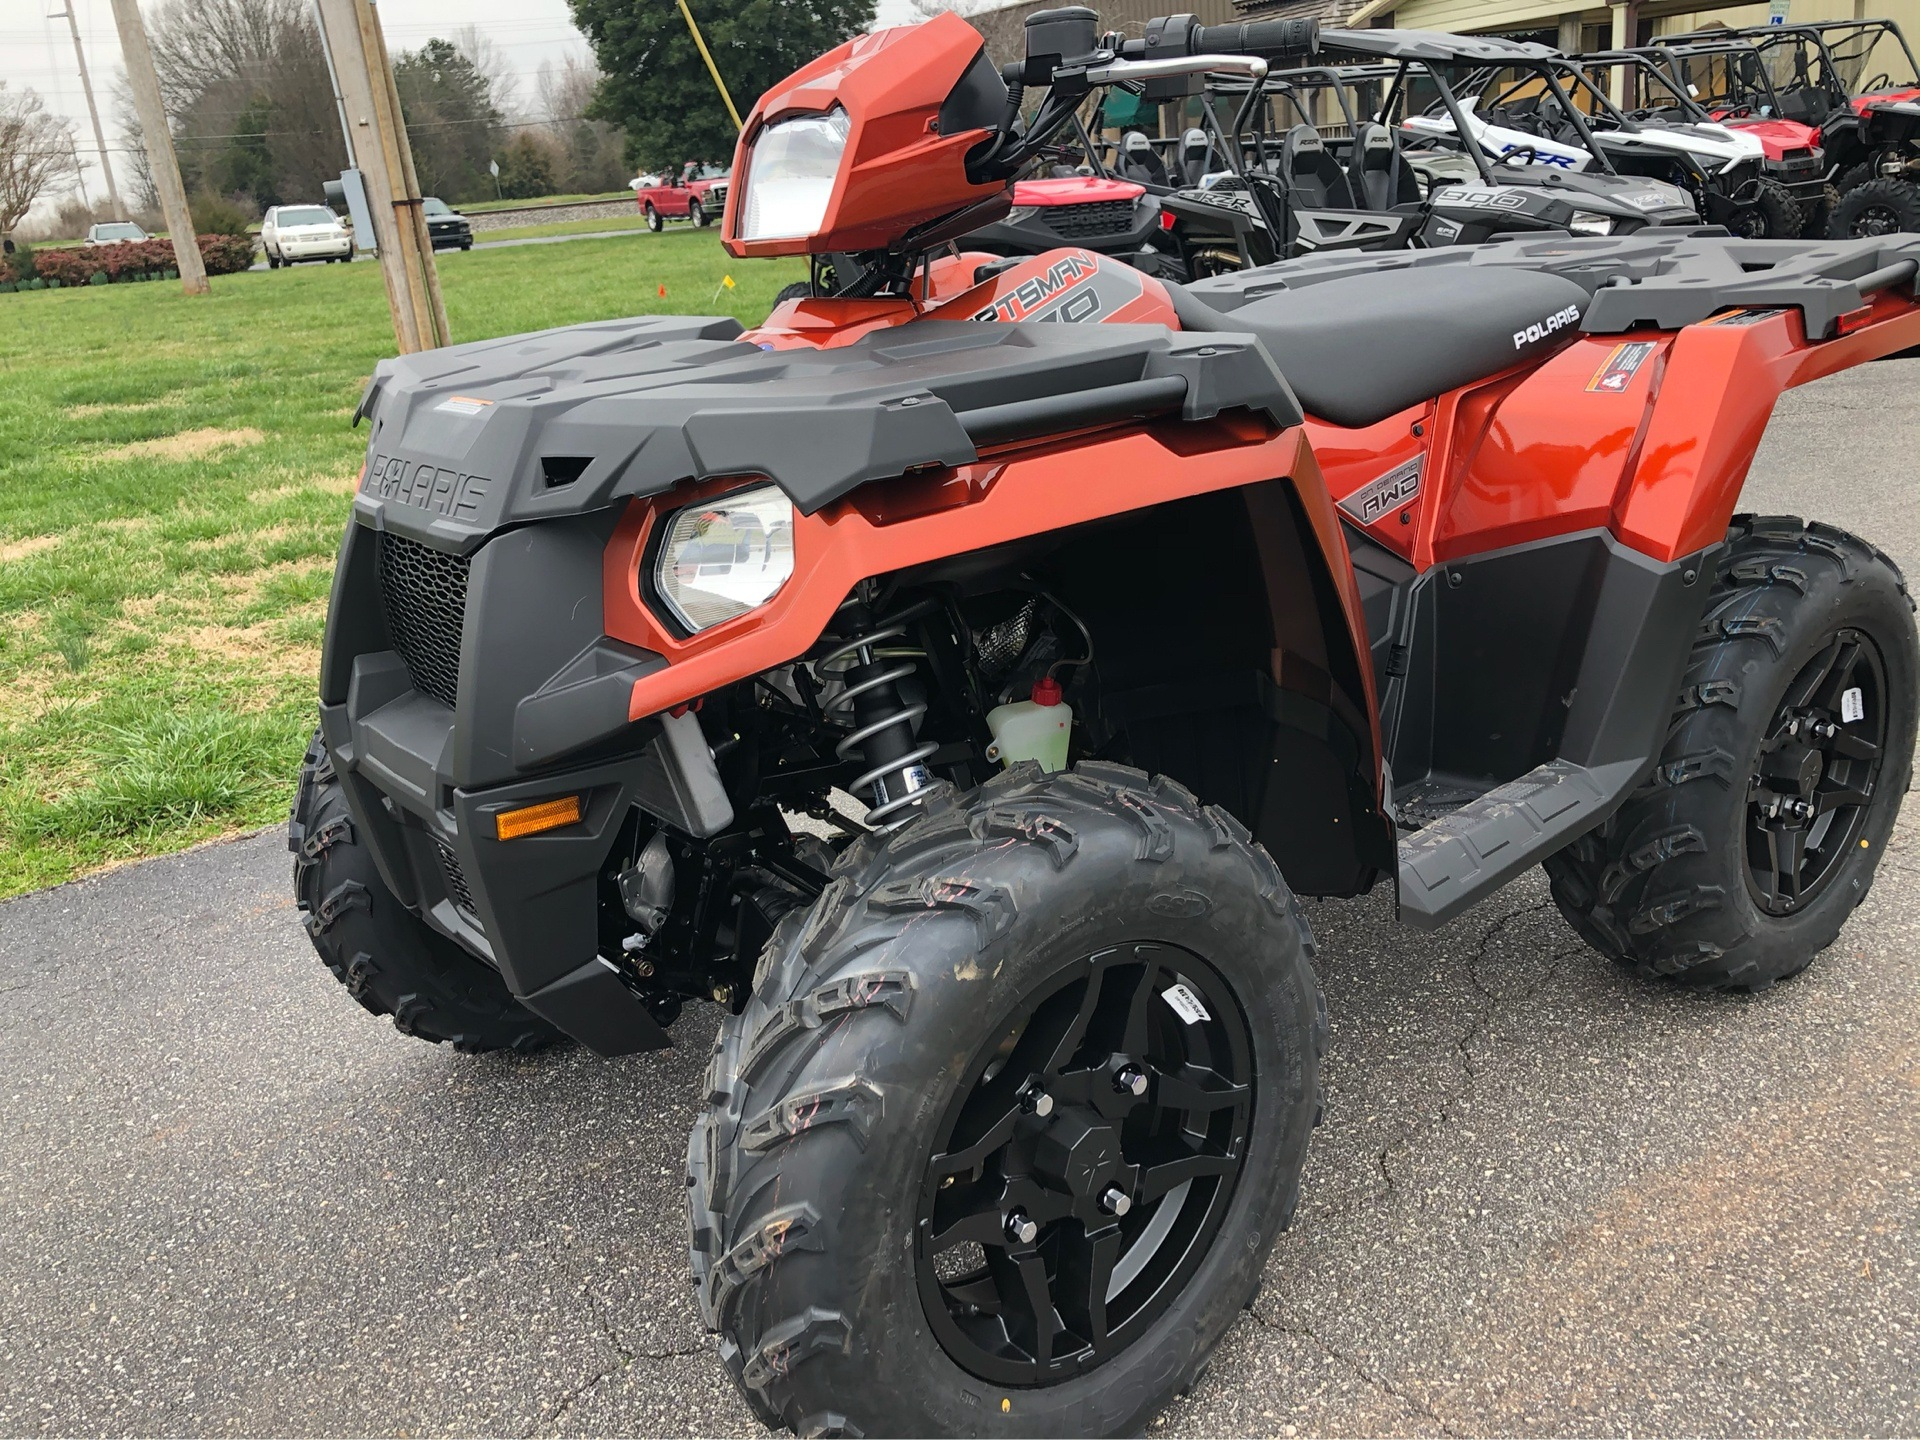 2020 Polaris Sportsman 570 Premium in Statesville, North Carolina - Photo 3